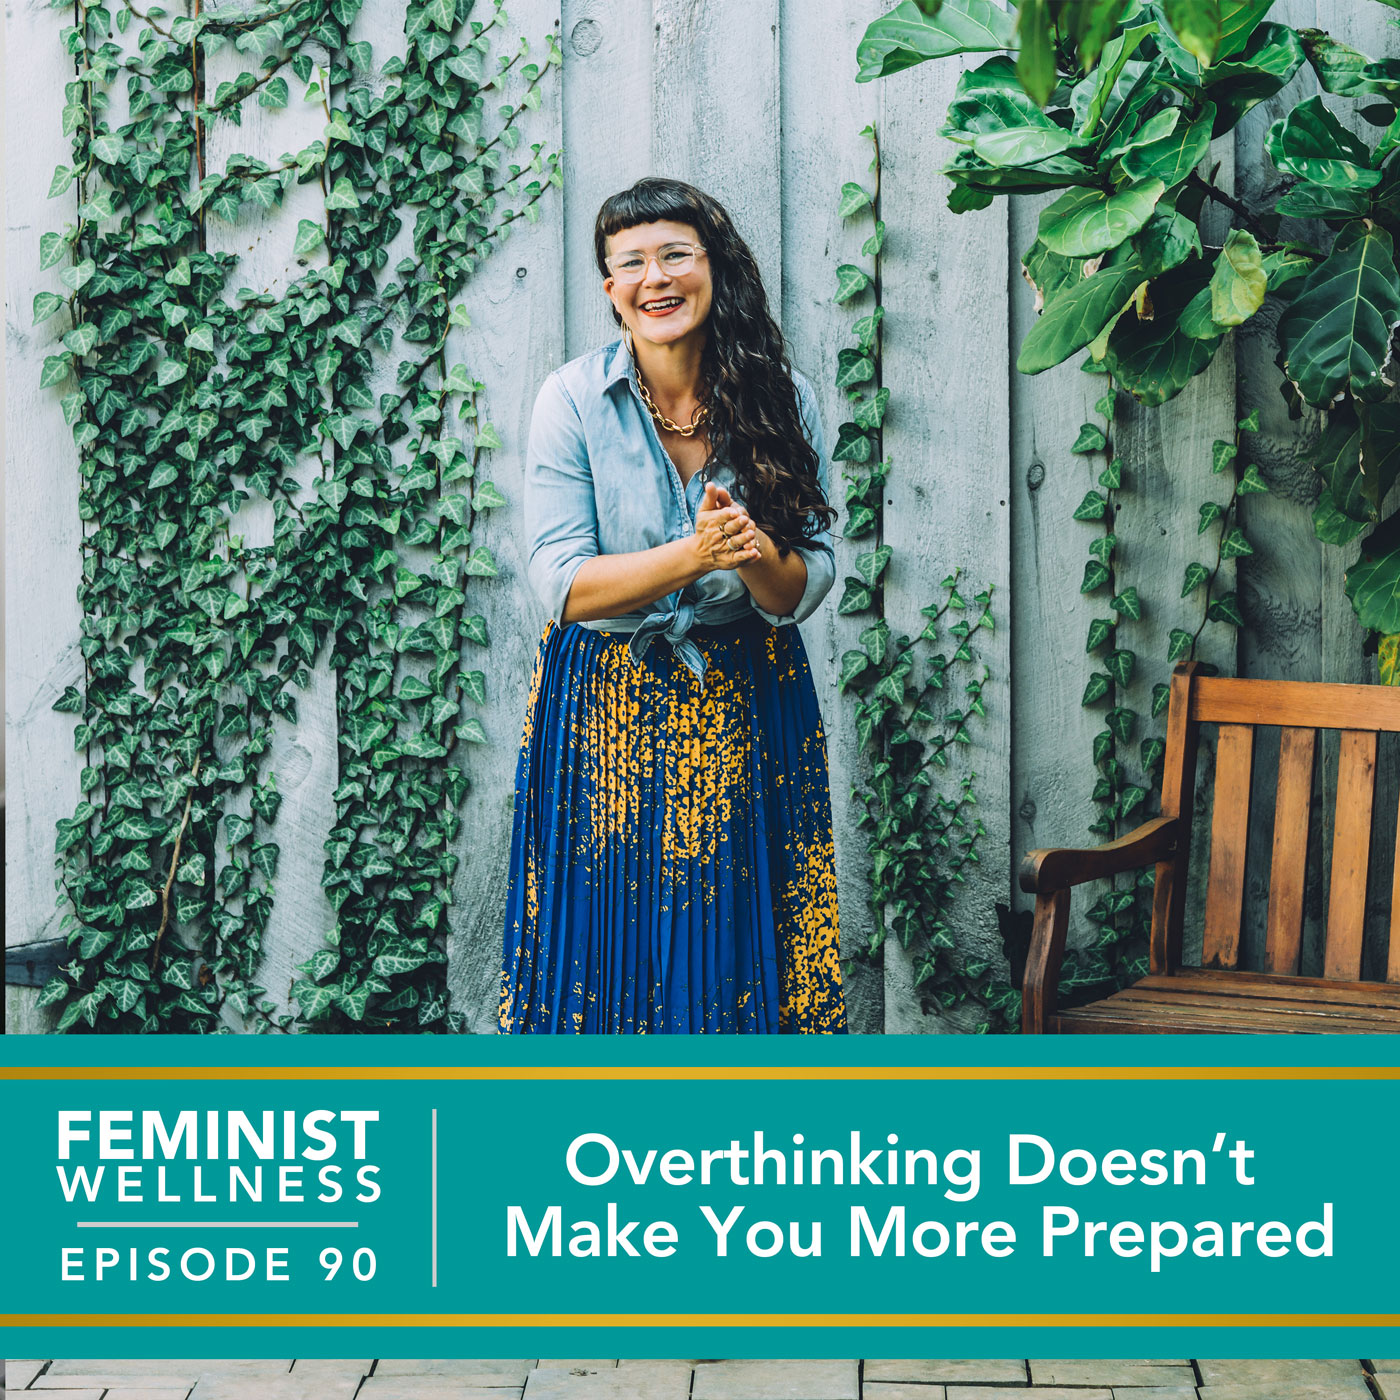 Overthinking Doesn't Make You More Prepared